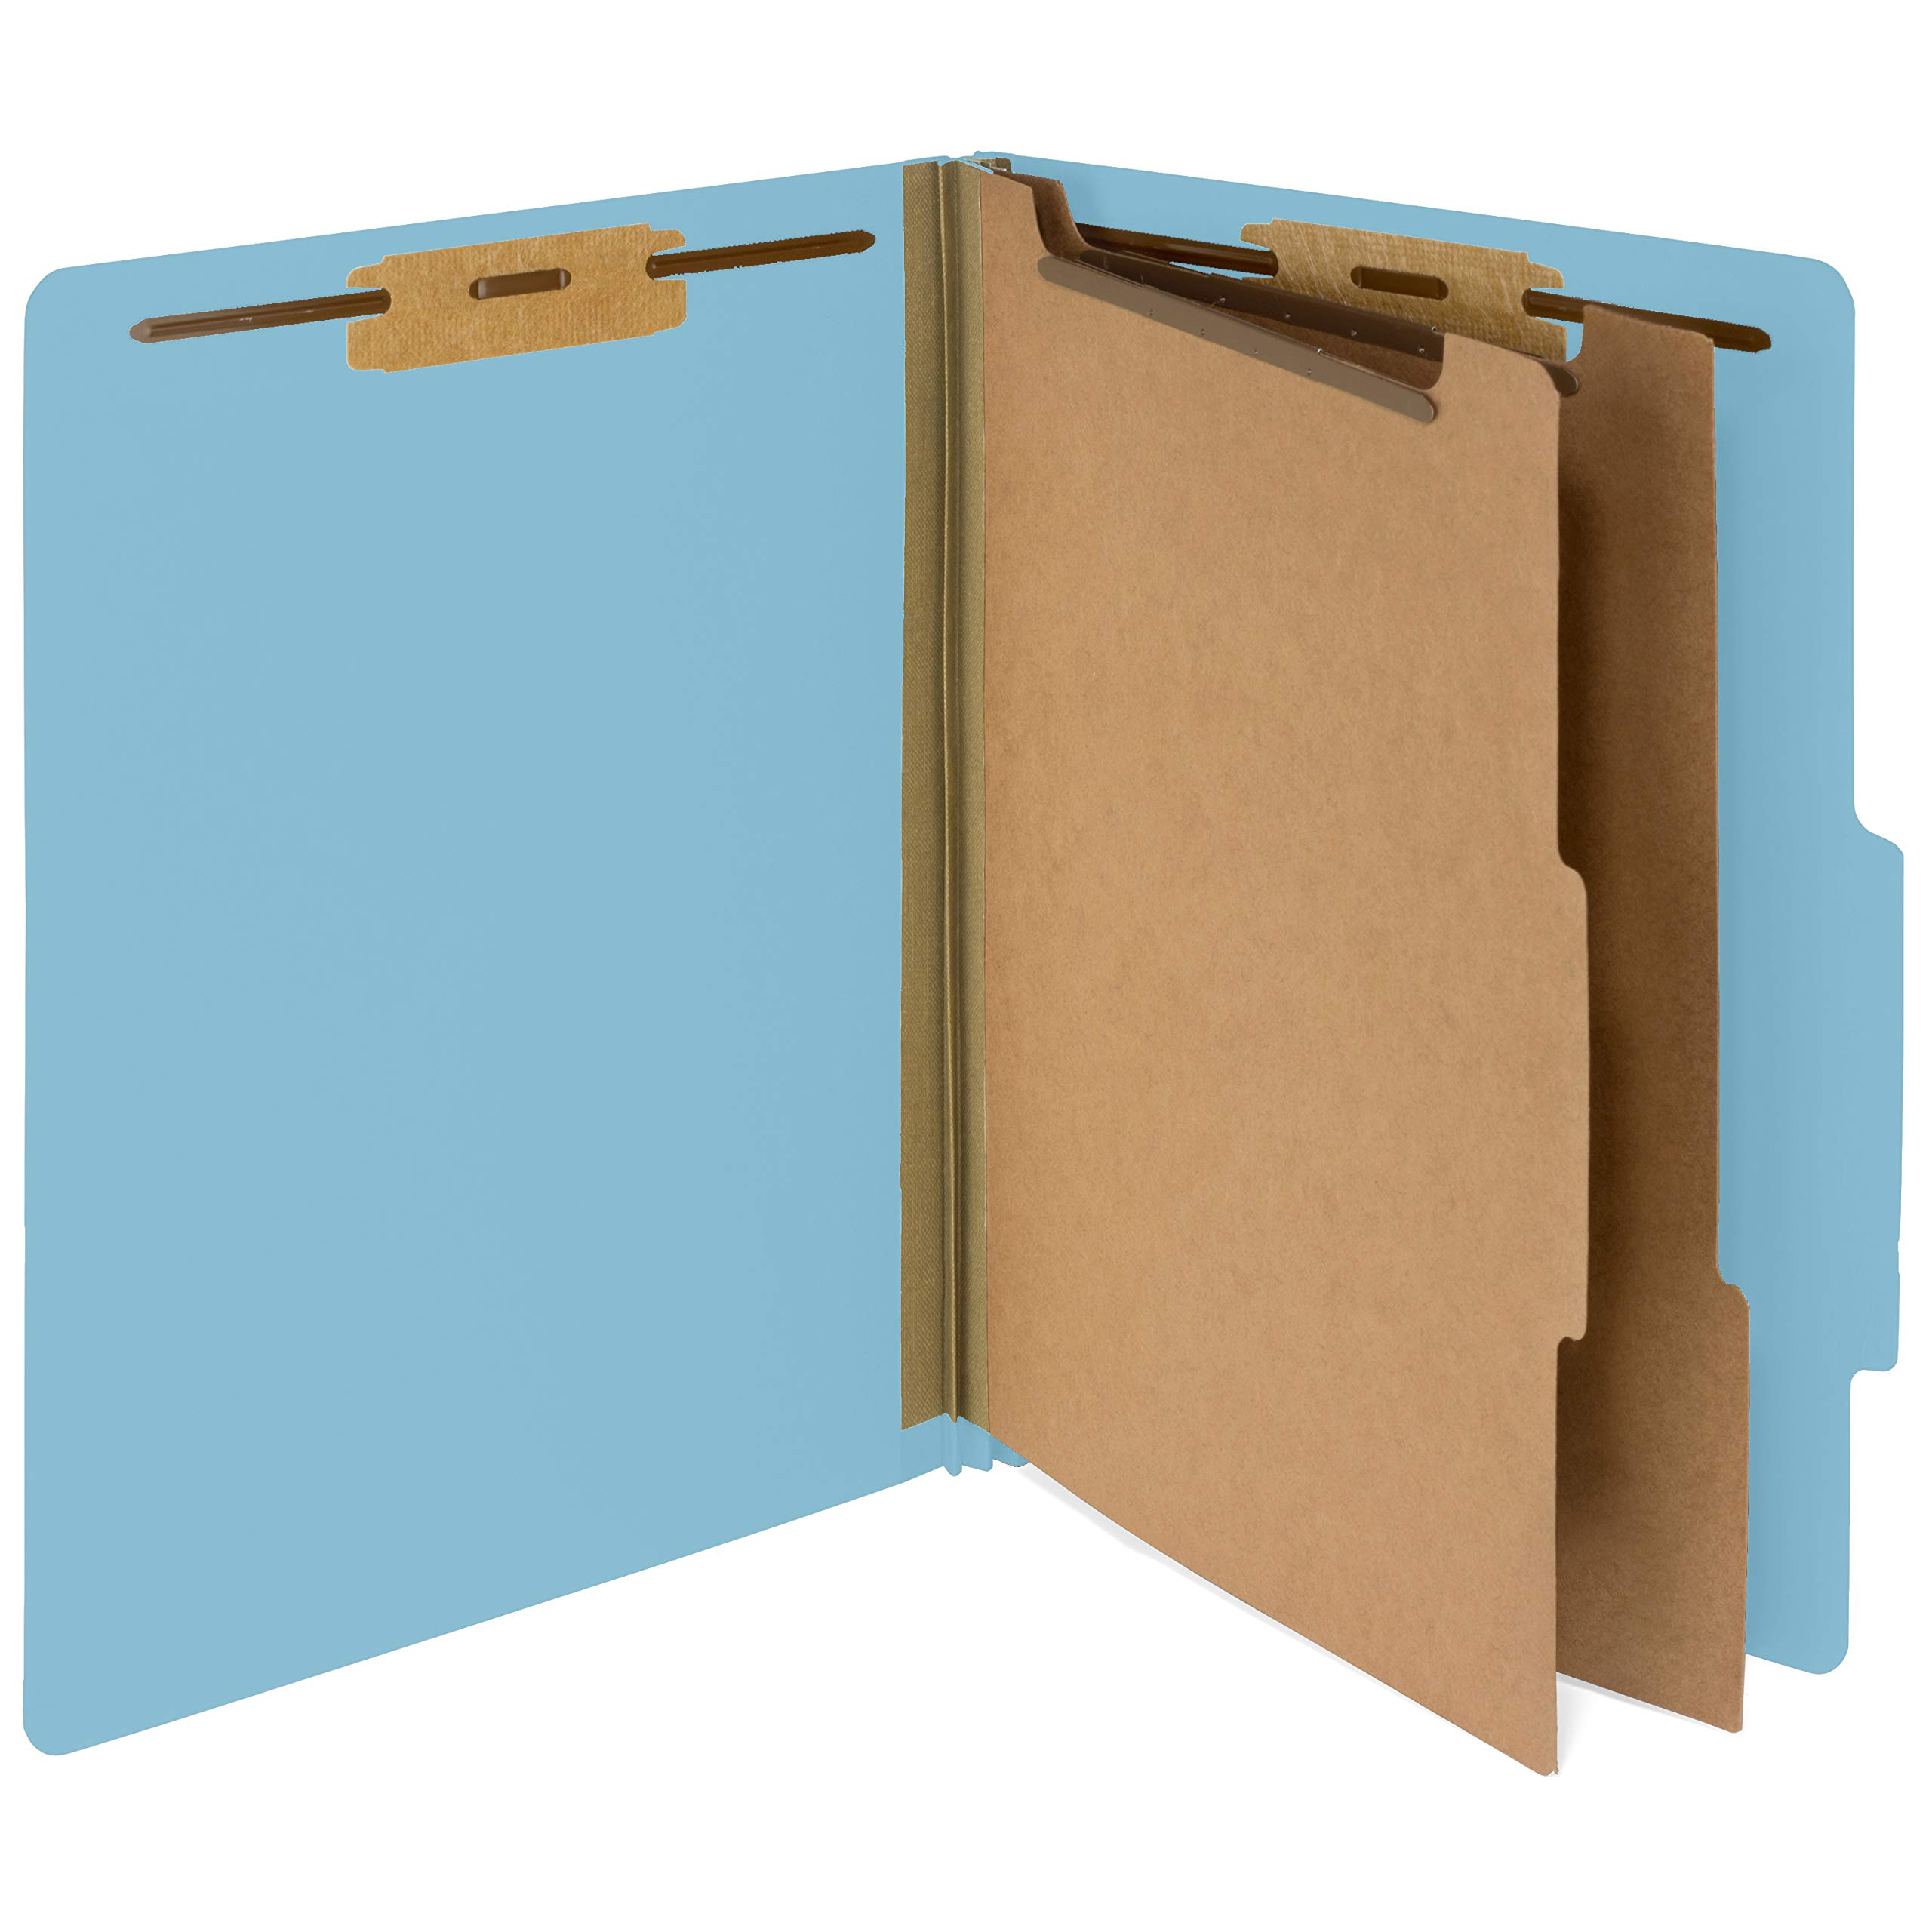 10 Blue Classification Folders - 2 Divider - 2 Inch Tyvek Expansions - Durable 2 Prongs Designed to Organize Standard Medical Files, Law Client and Office Files - Letter Size, Light Blue, 10 Pack by Blue Summit Supplies